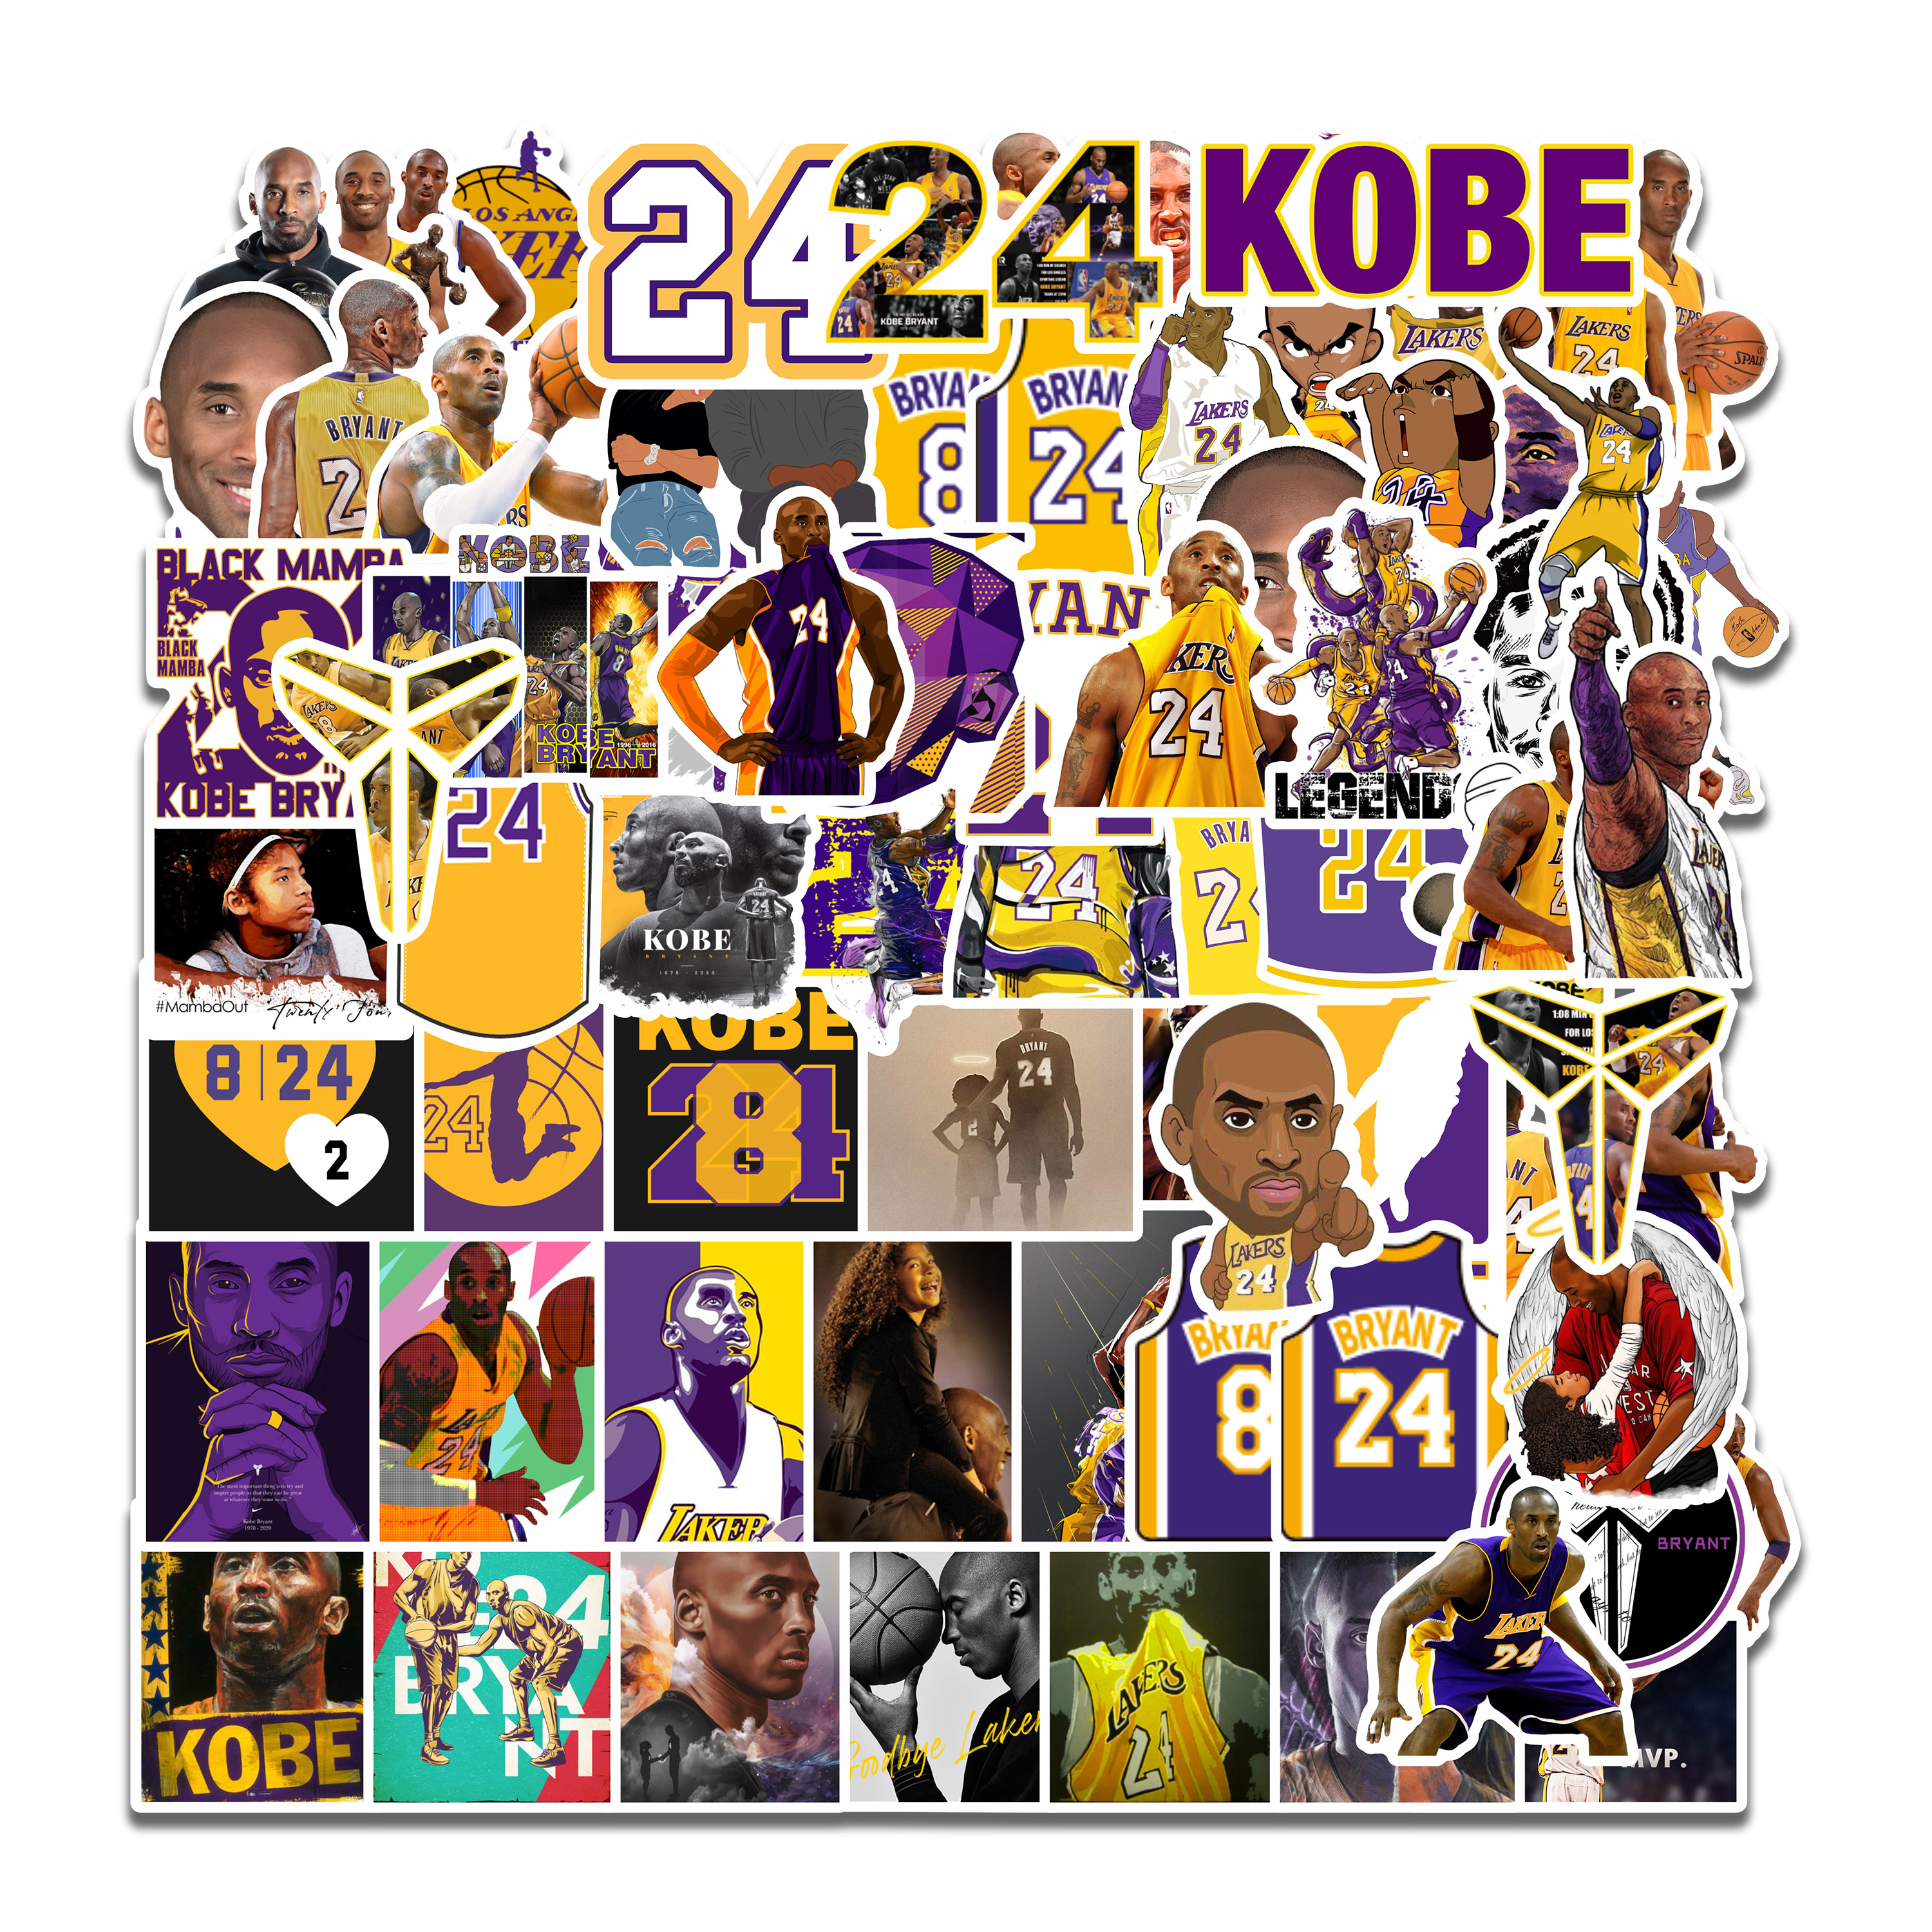 75pcs/Pack Basketball Stickers Kobe Bryant Sticker Waterproof Kids Toy Stickers For Luggage Laptop Phone Skateboard Decal